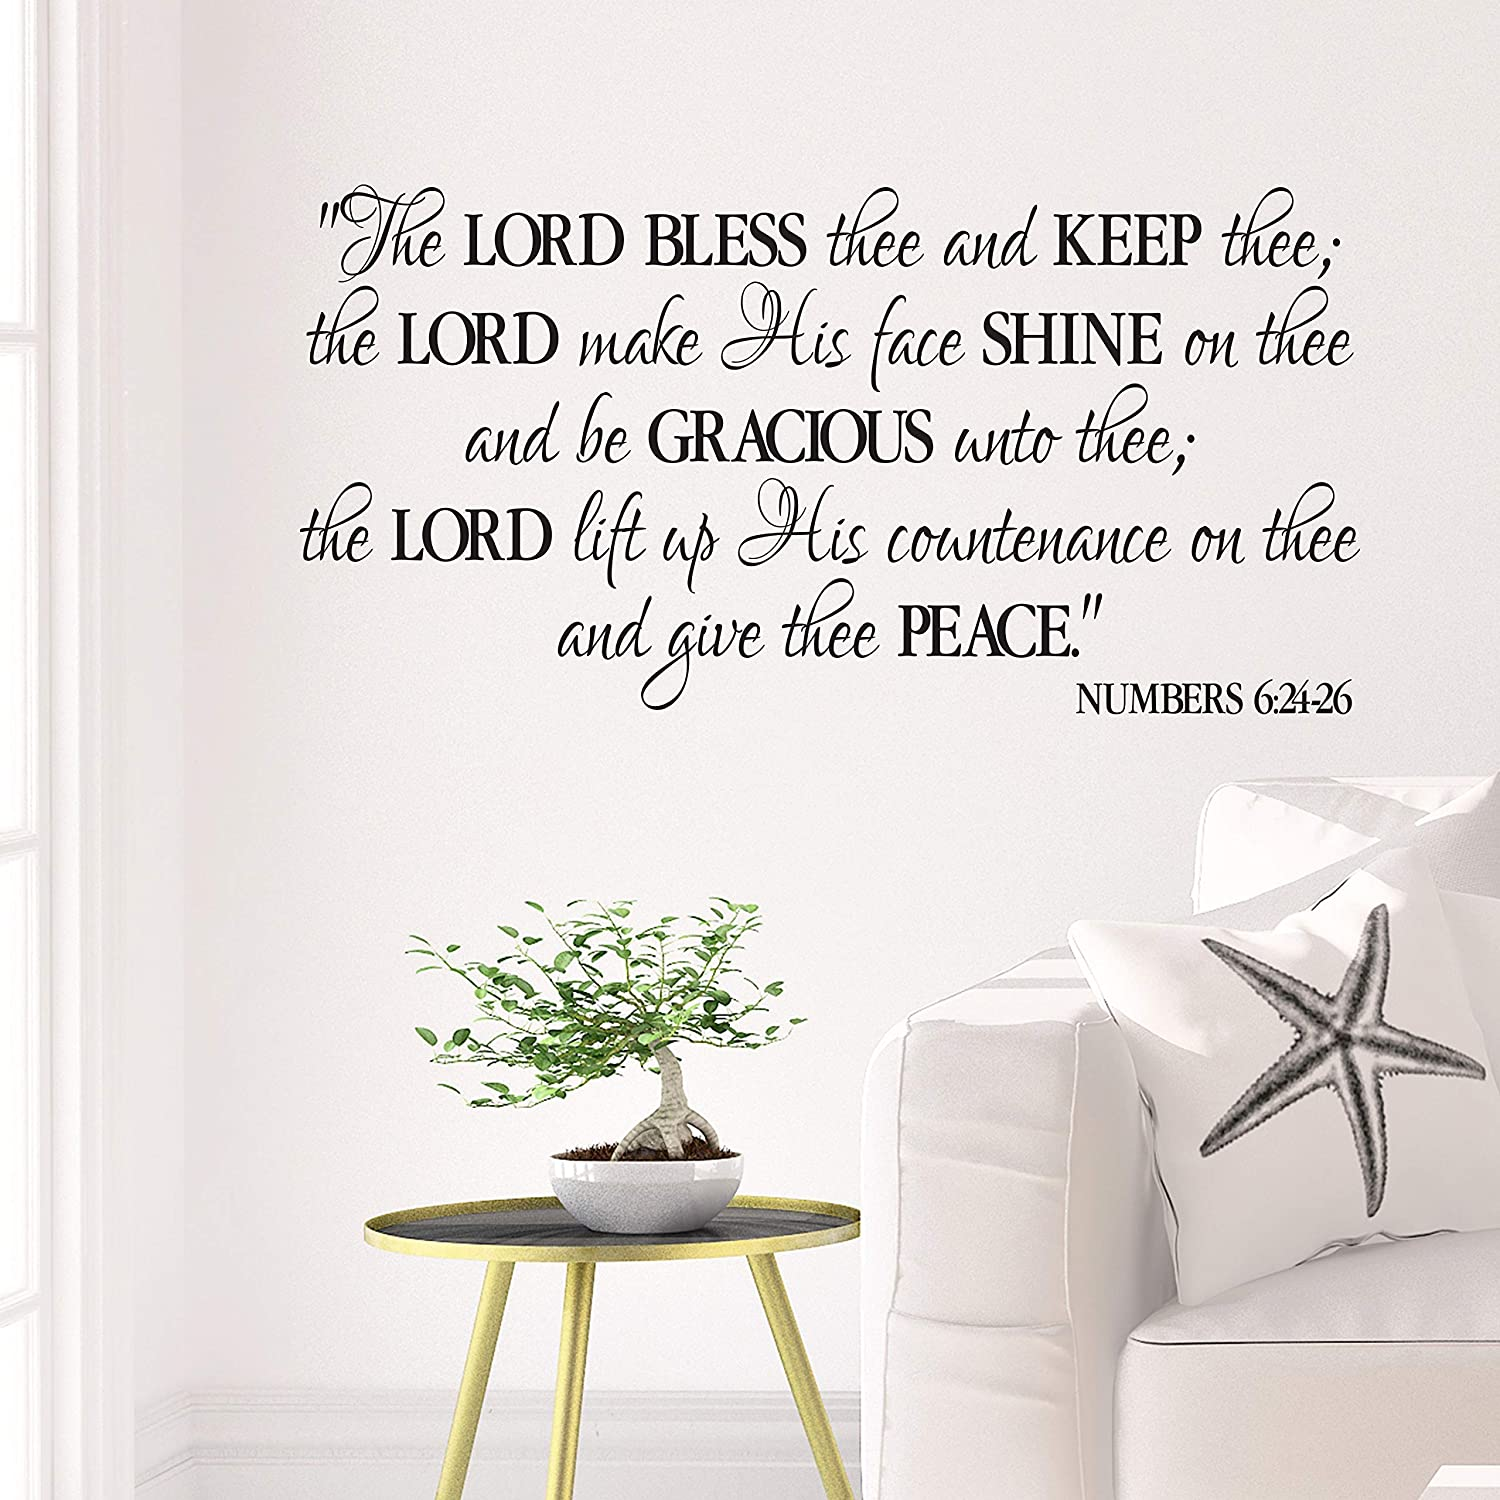 PRAISE THE LORD wall decal home church decor ANY COLOR